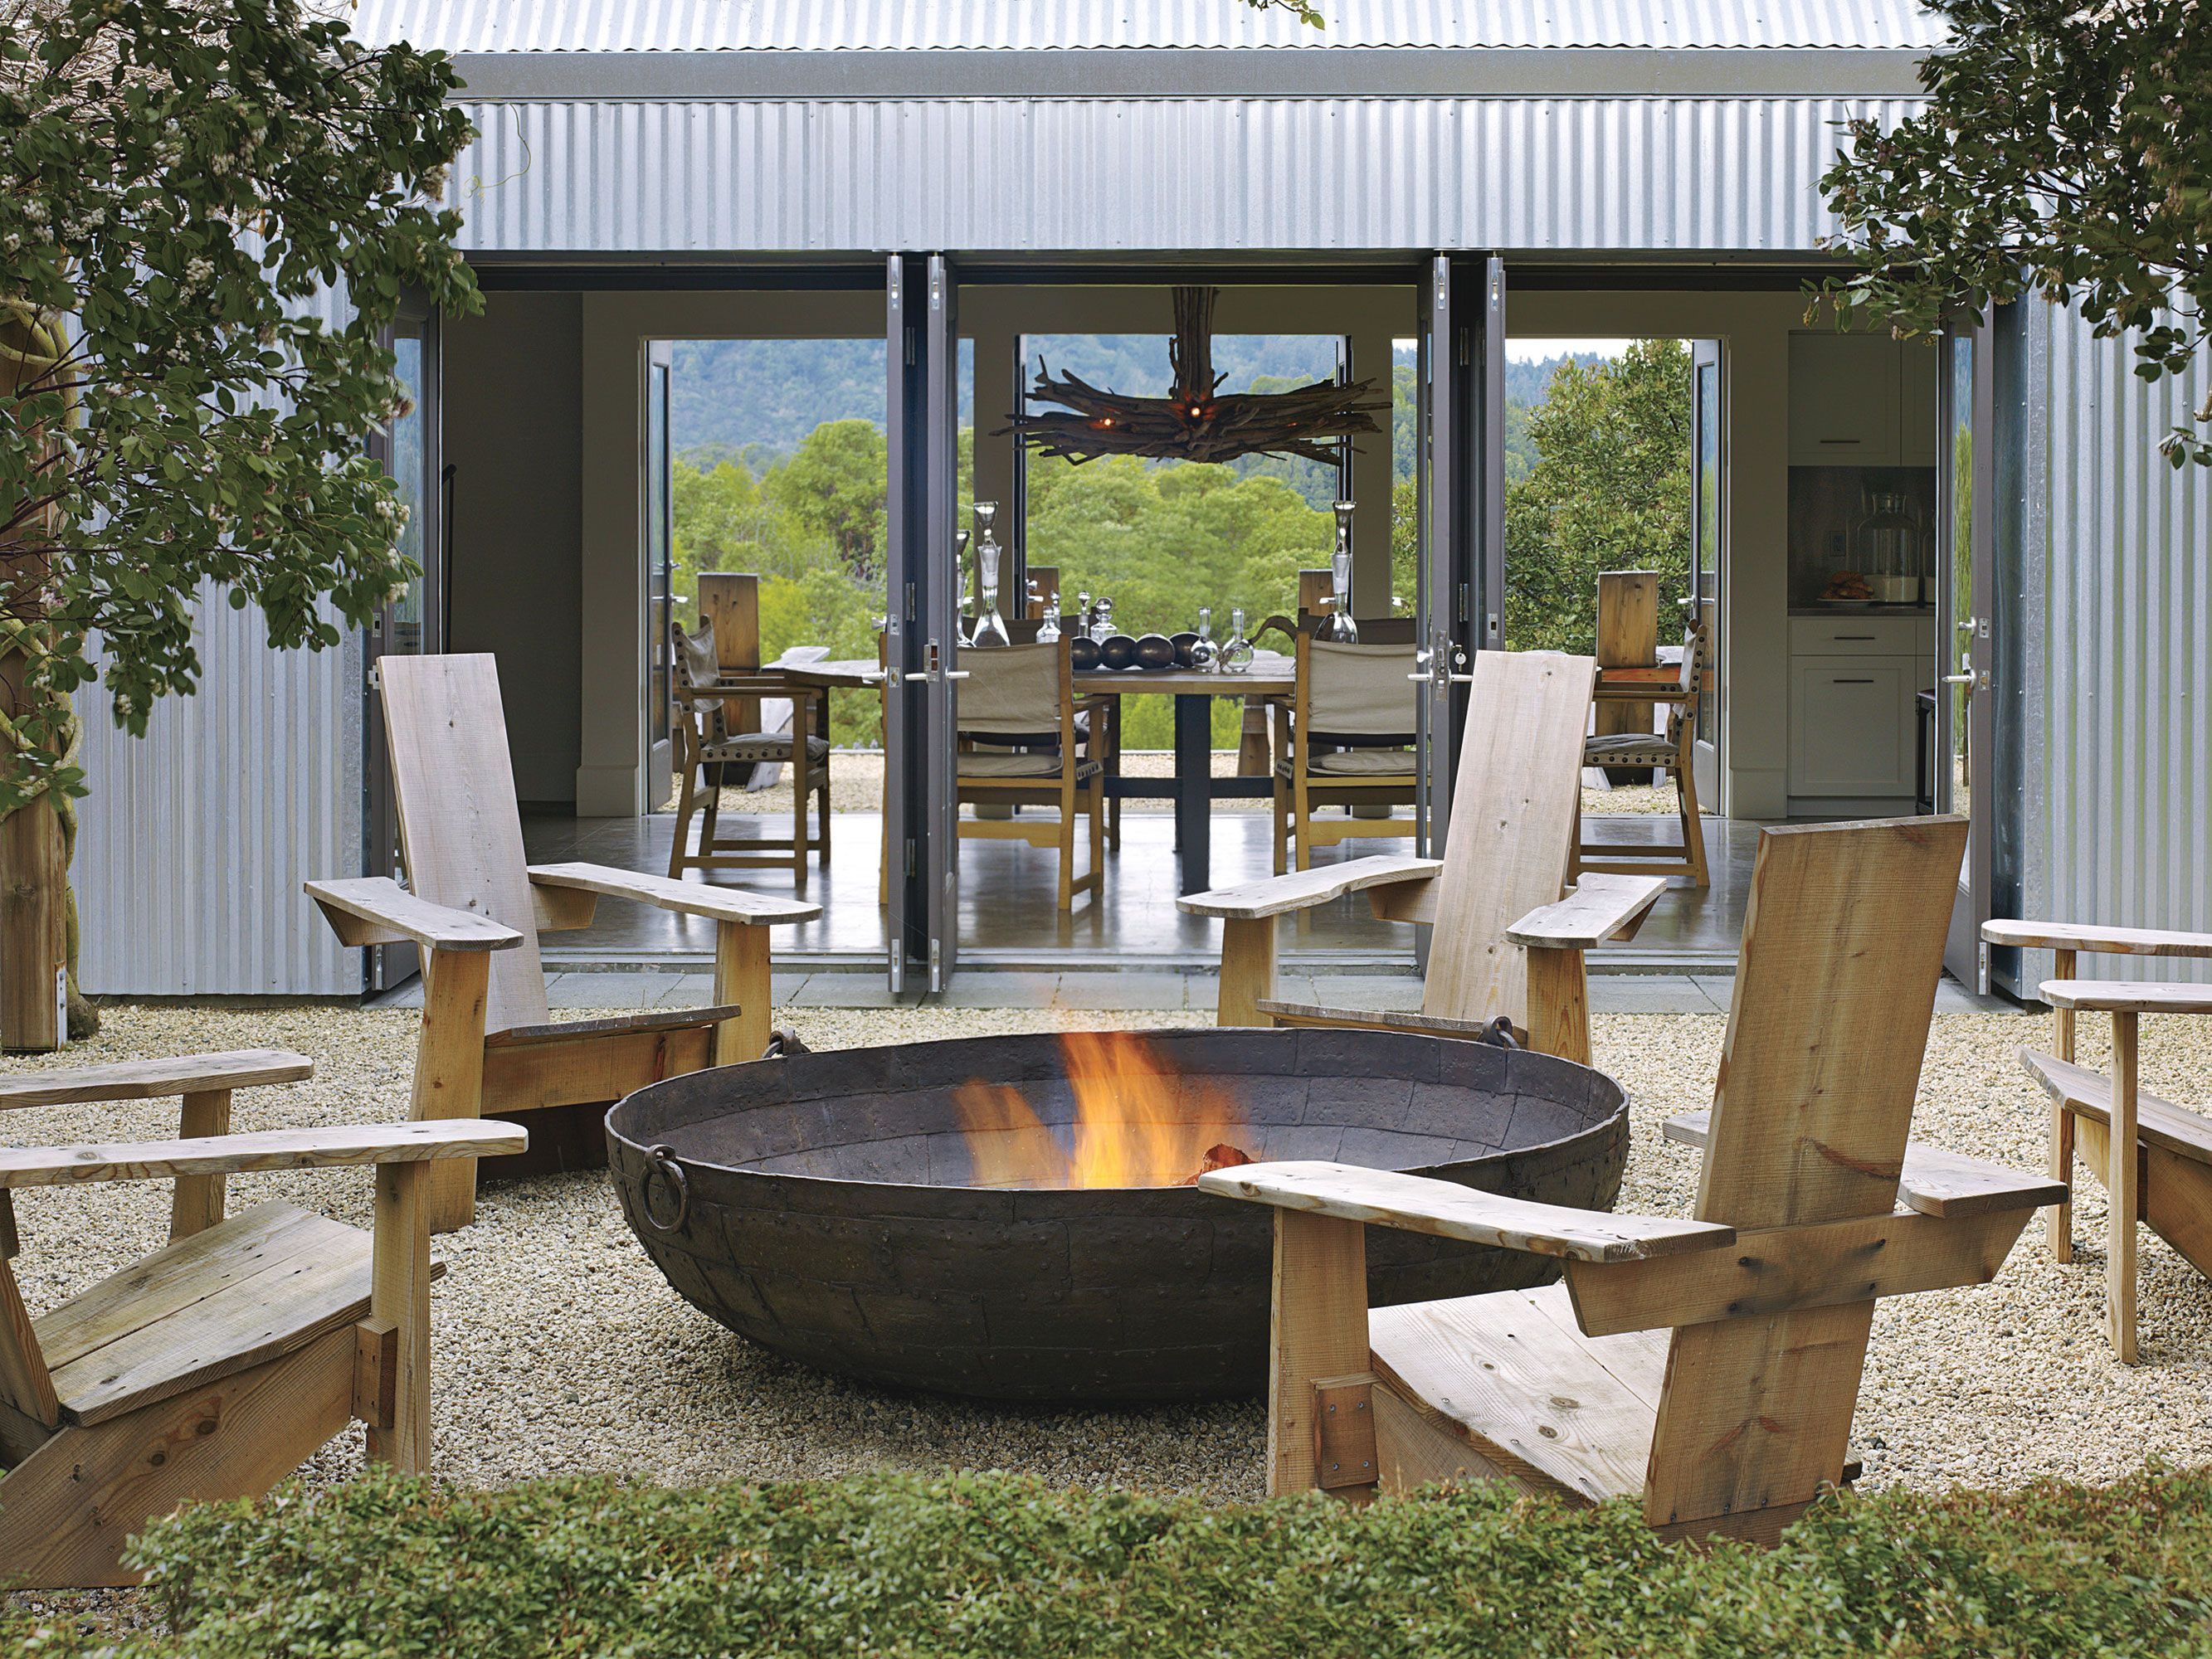 a collection of graphic updated adirondack chairs surround an